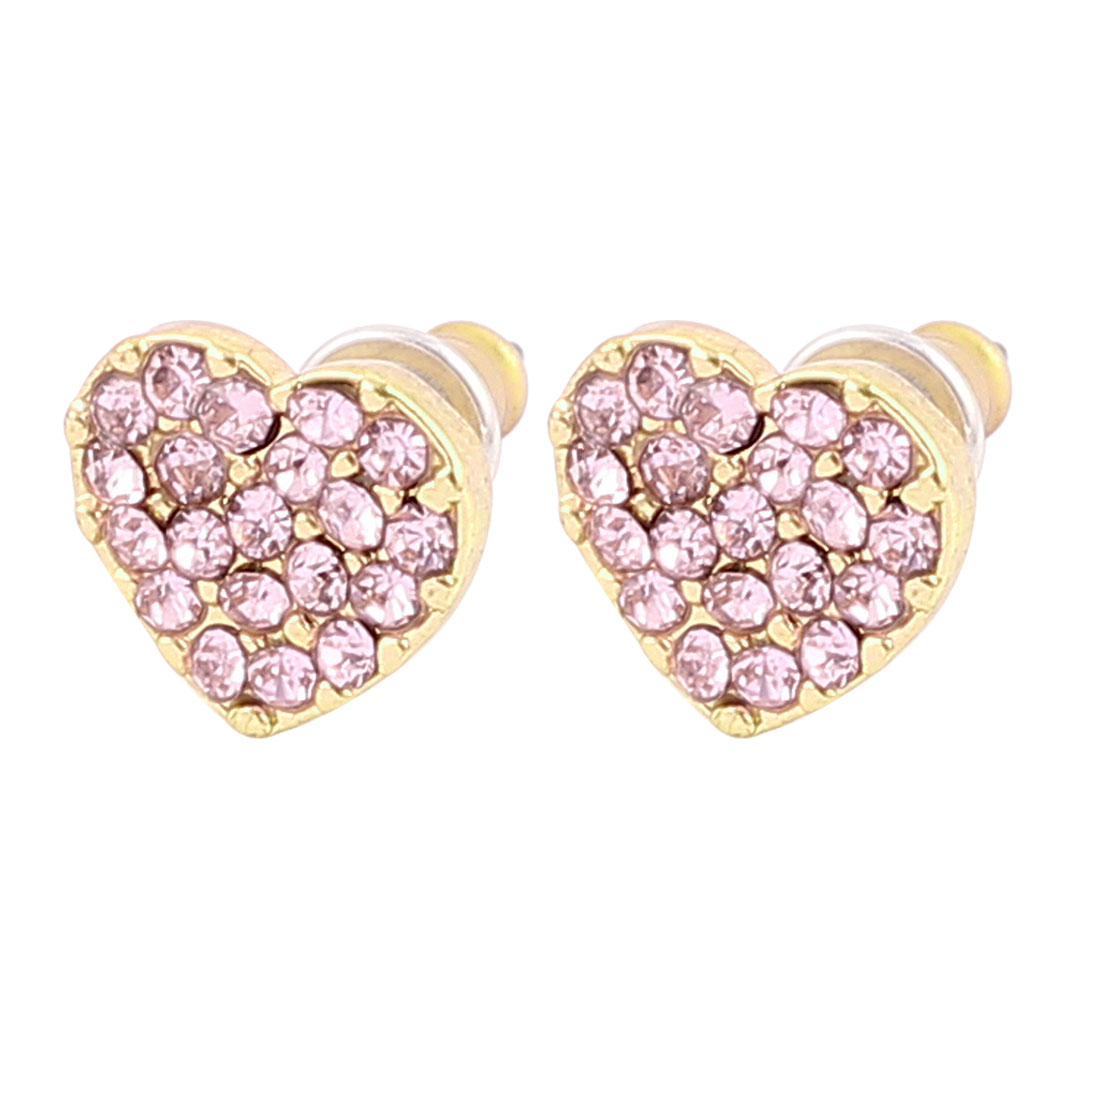 1.5cm Length Copper Tone Pink Faux Crystals Inlaided Heart Shape Metal Pierced Stud Pin Ear Nail Earrings Earbobs for Lady Women